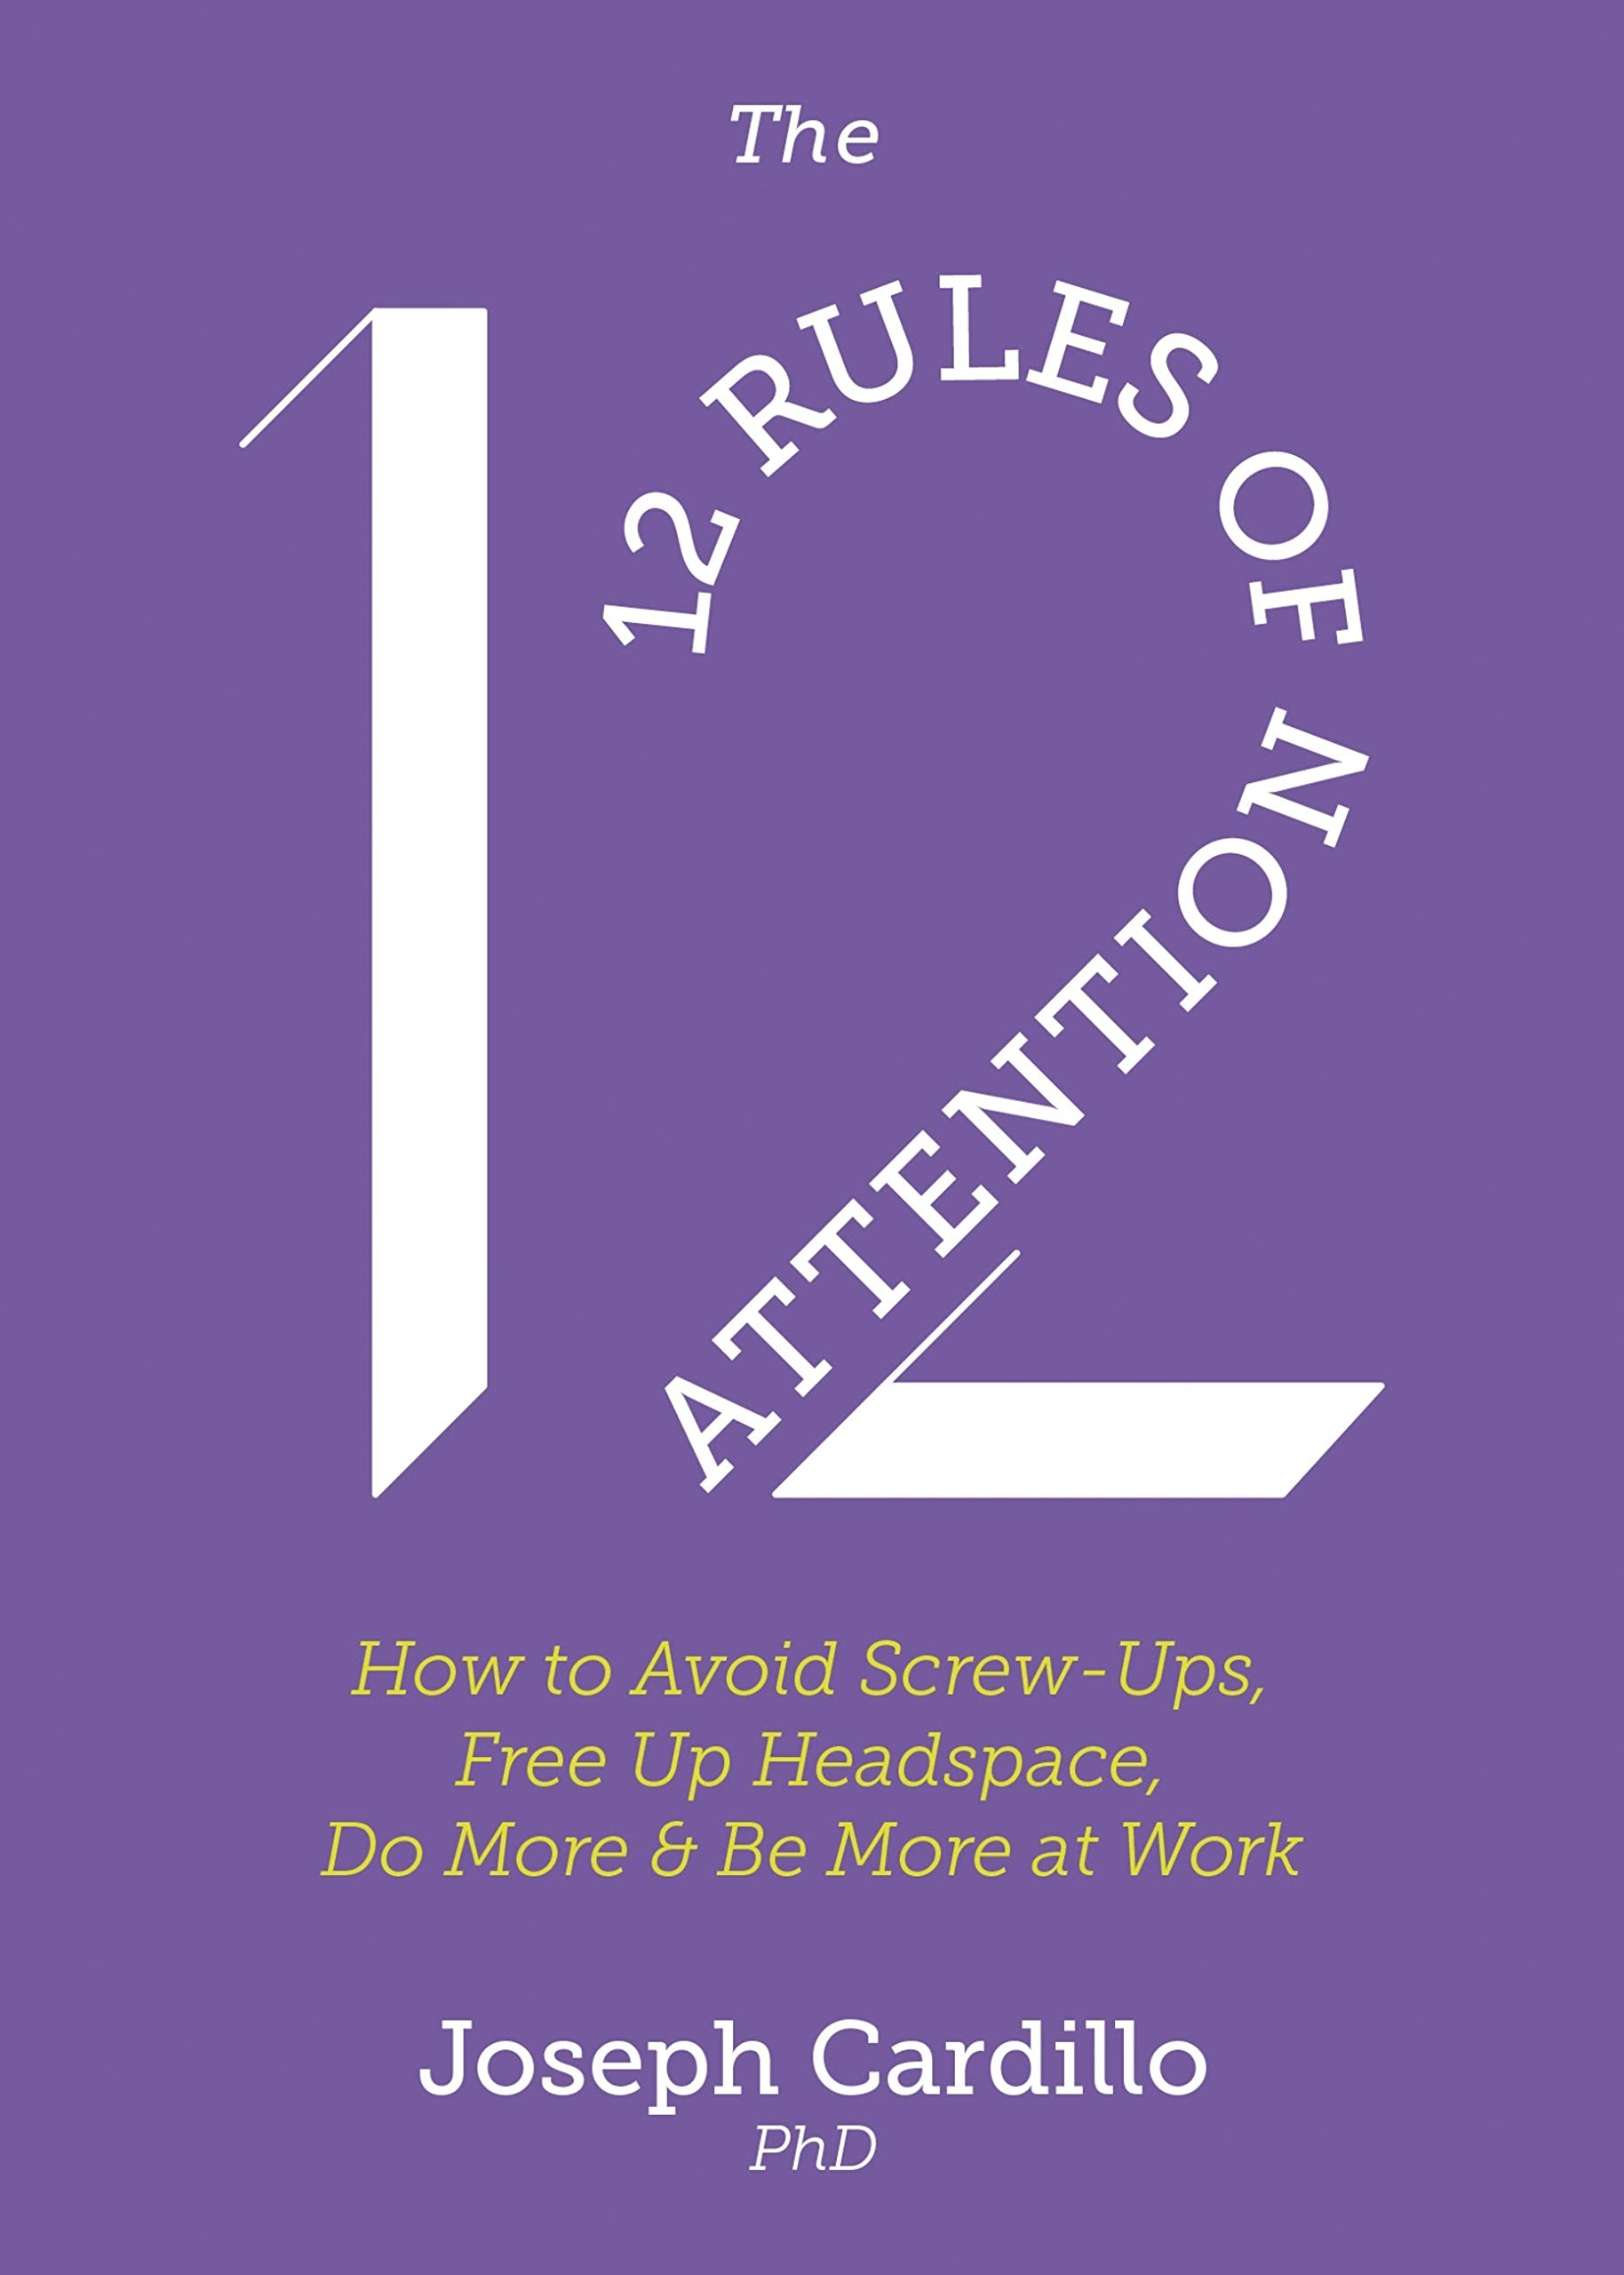 The 12 Rules of Attention: How to Avoid Screw-Ups, Free Up Headspace, Do More & Be More At Work